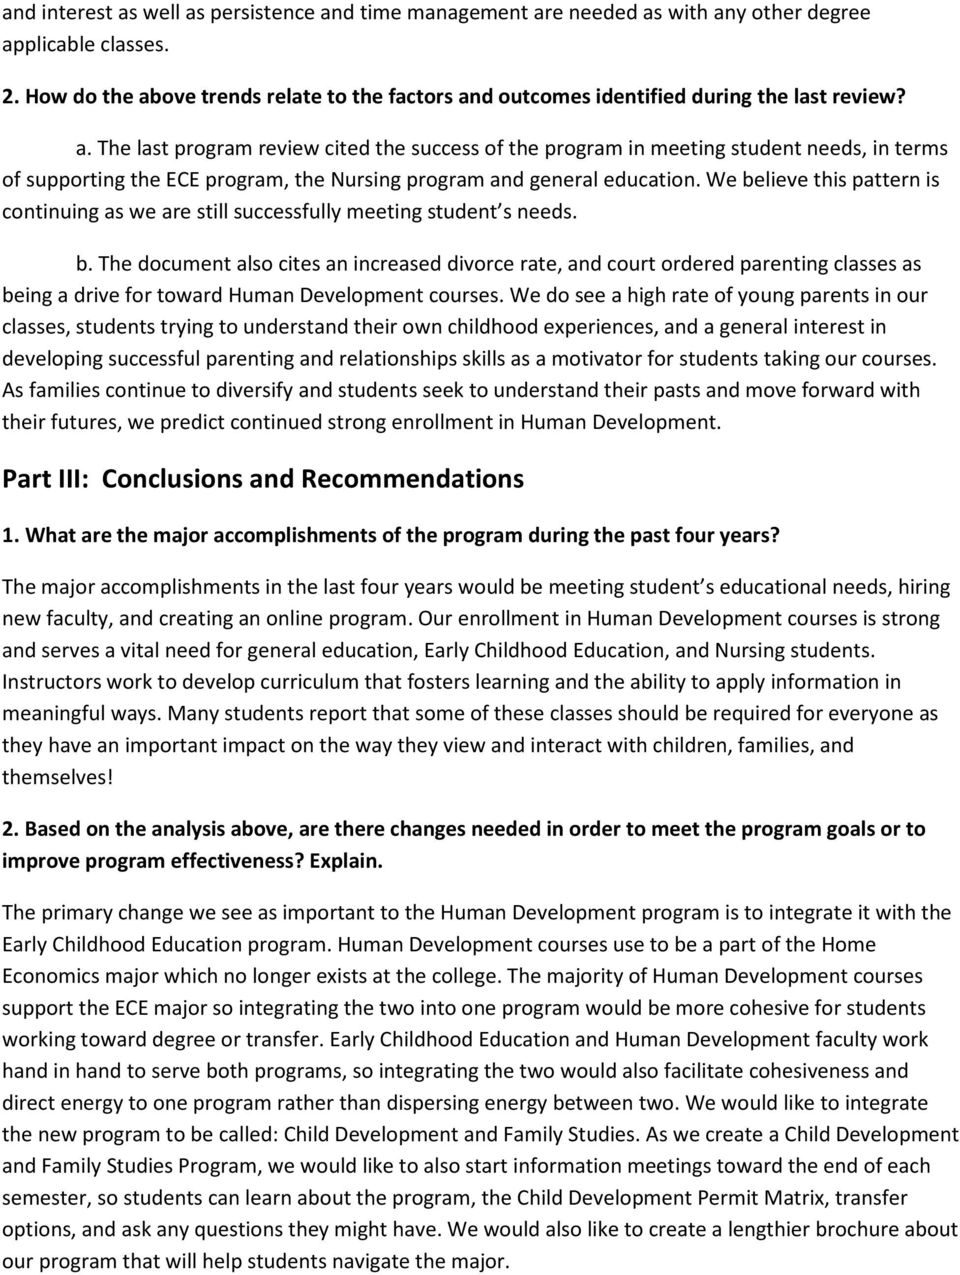 We believe this pattern is continuing as we are still successfully meeting student s needs. b. The document also cites an increased divorce rate, and court ordered parenting classes as being a drive for toward Human Development courses.